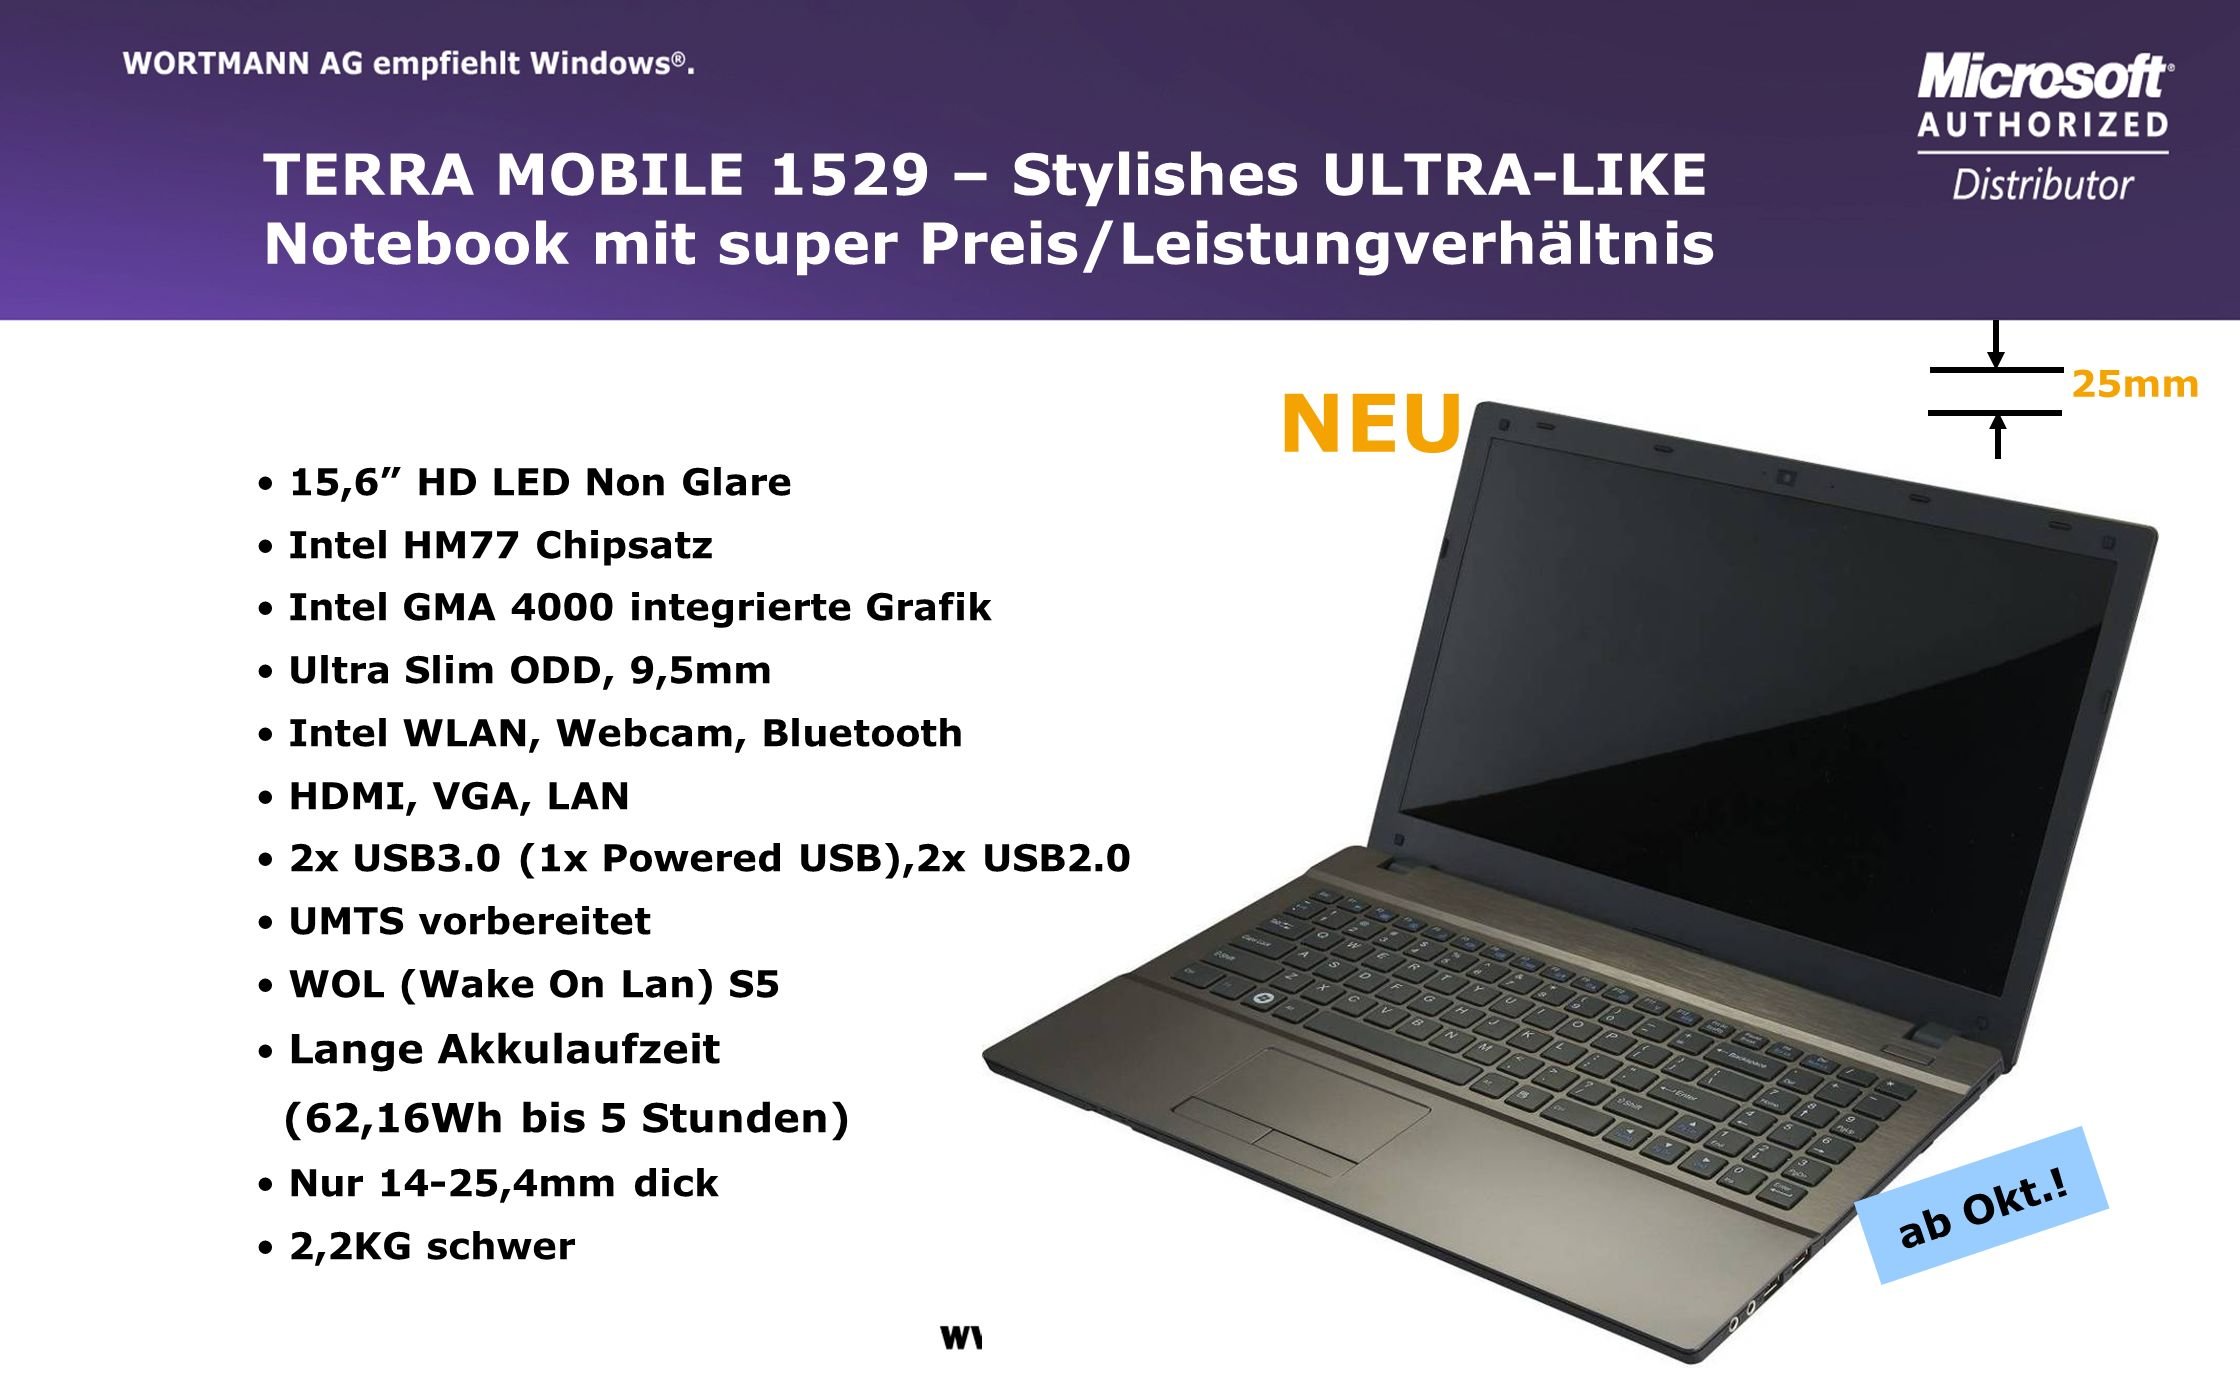 NEU TERRA MOBILE 1529 – Stylishes ULTRA-LIKE